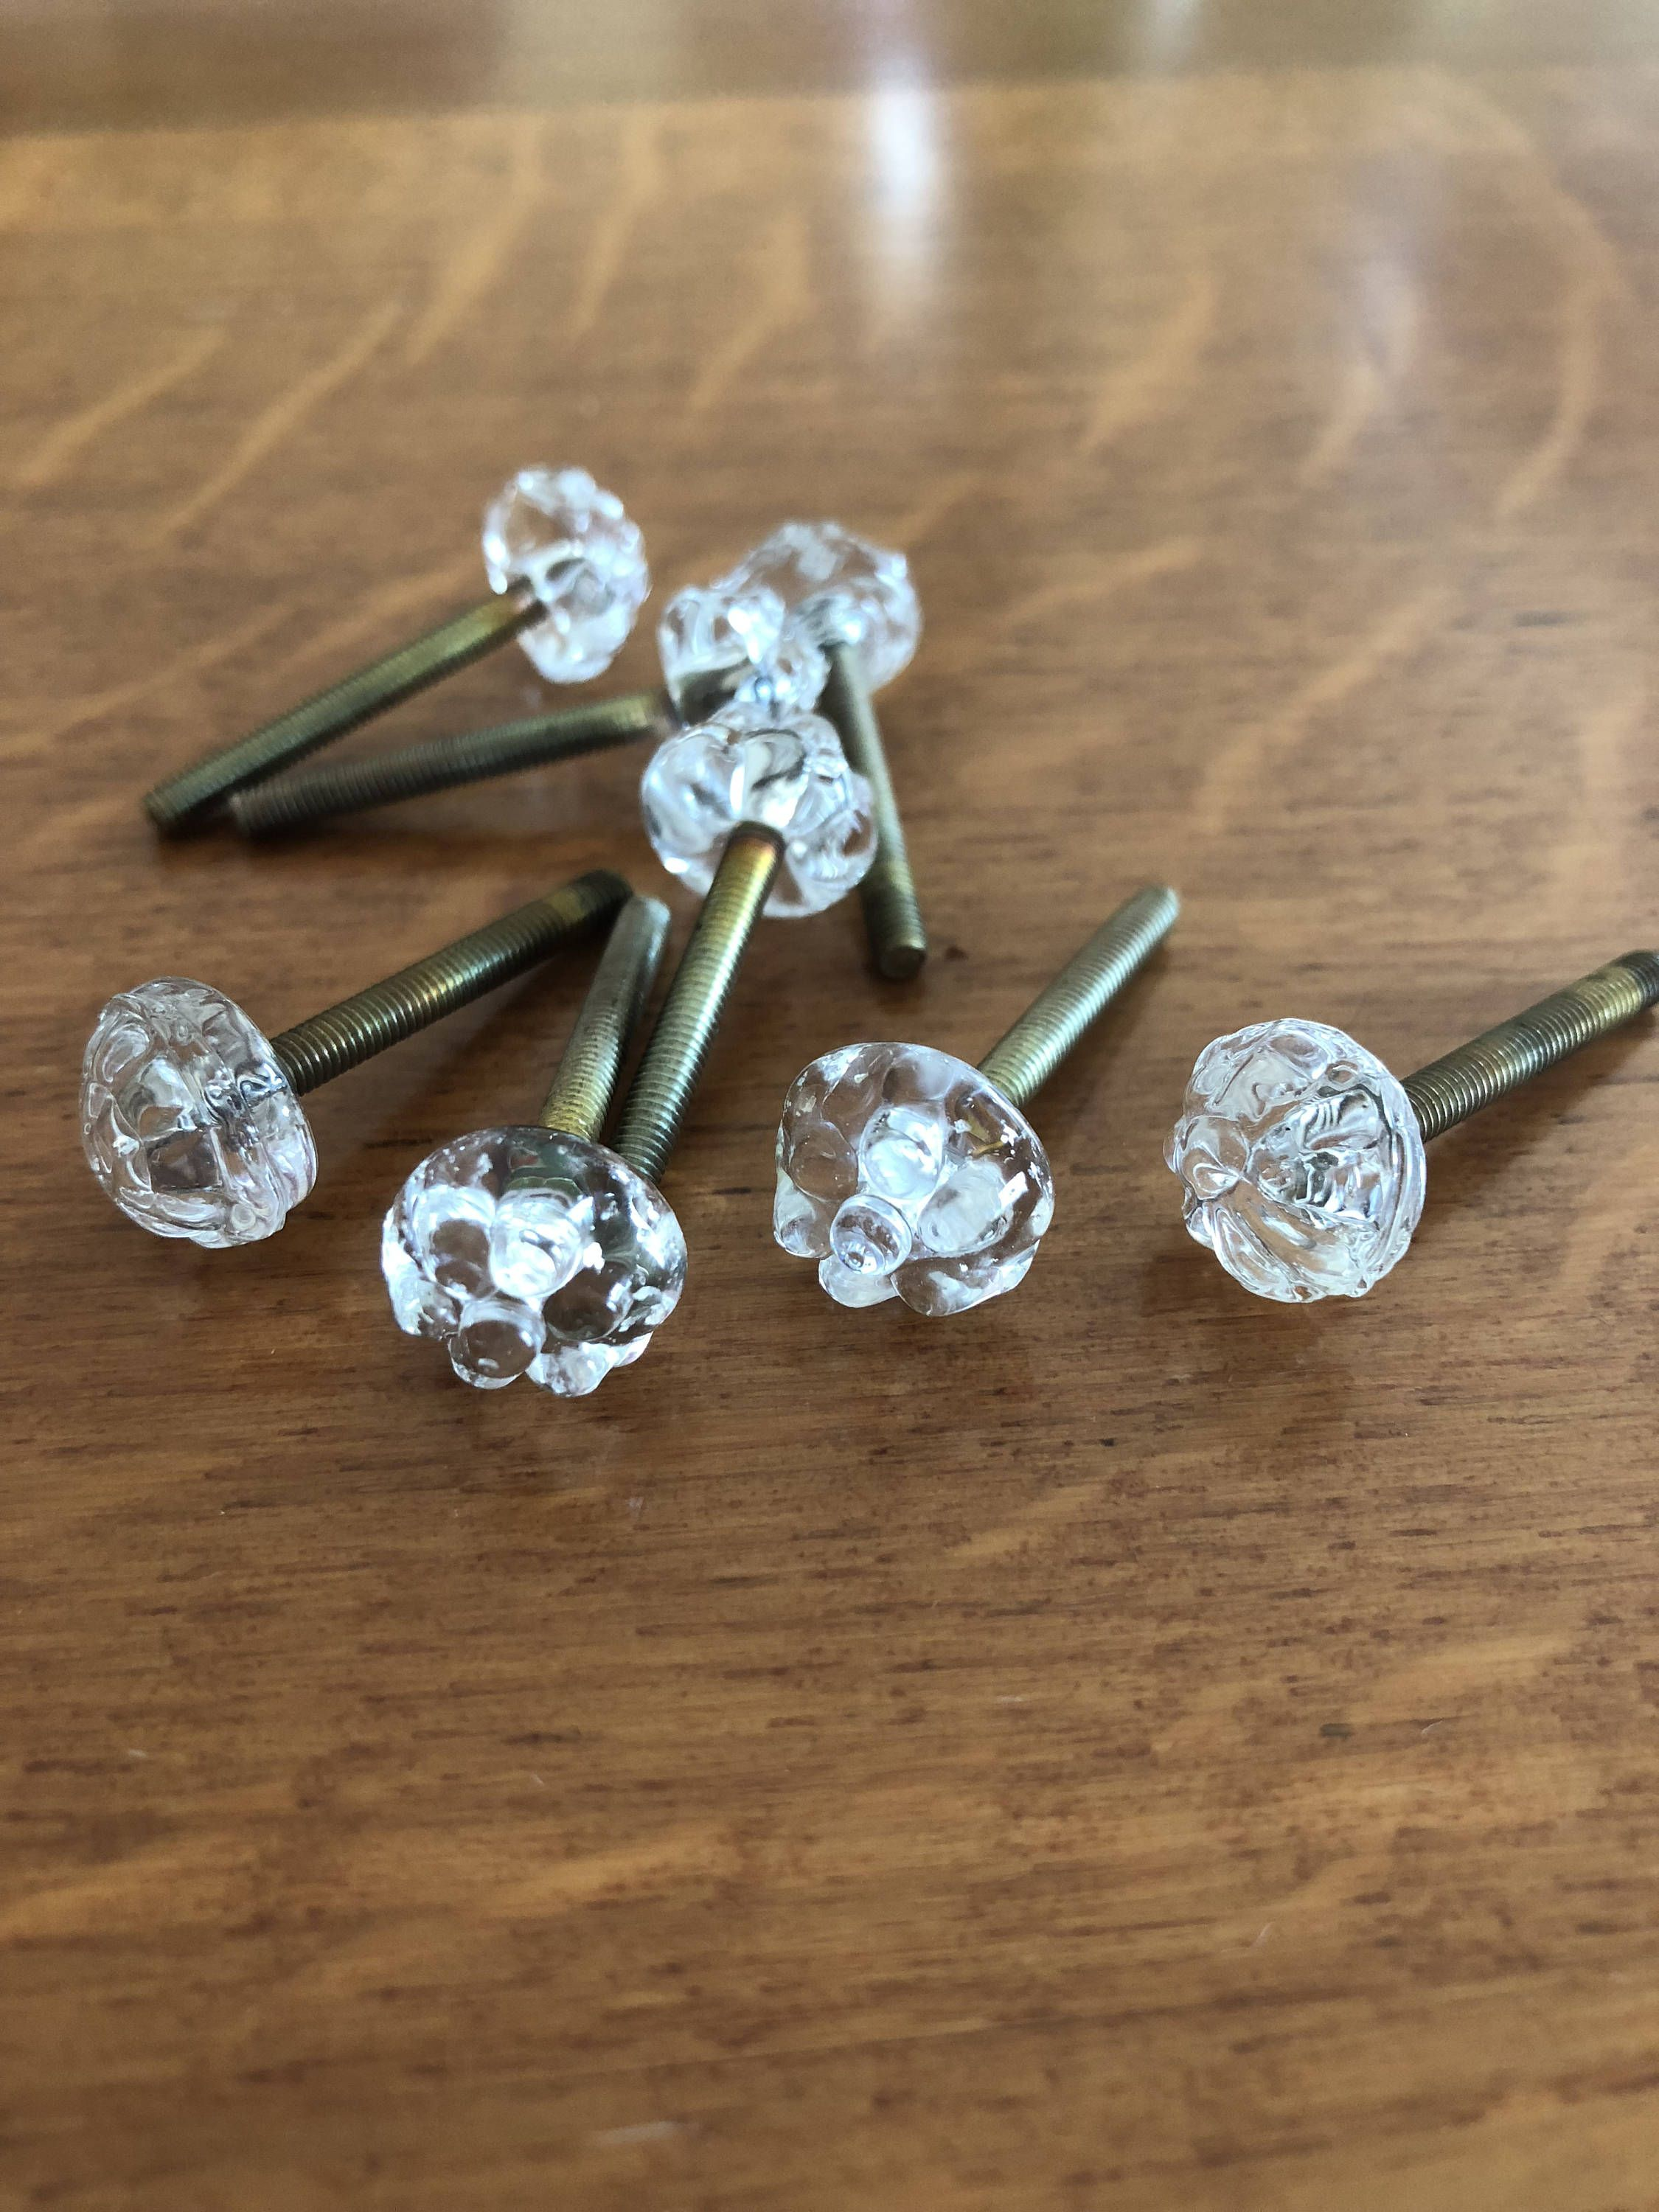 Nails For Rosette Spare Parts For Venetian Mirrors Ceiling And